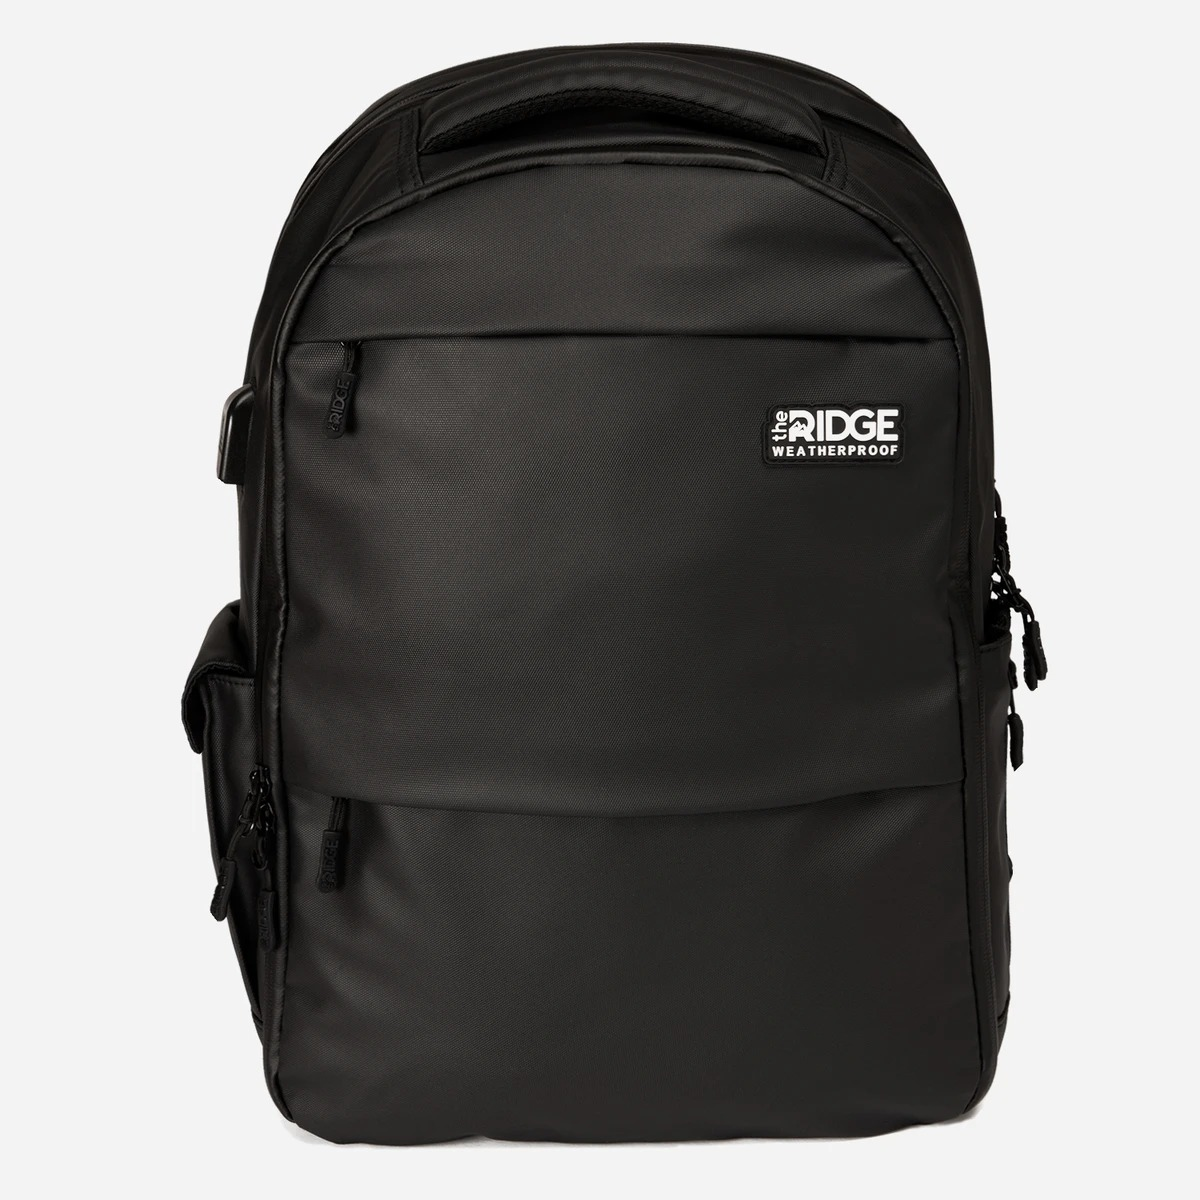 The Ridge Commuter Backpack